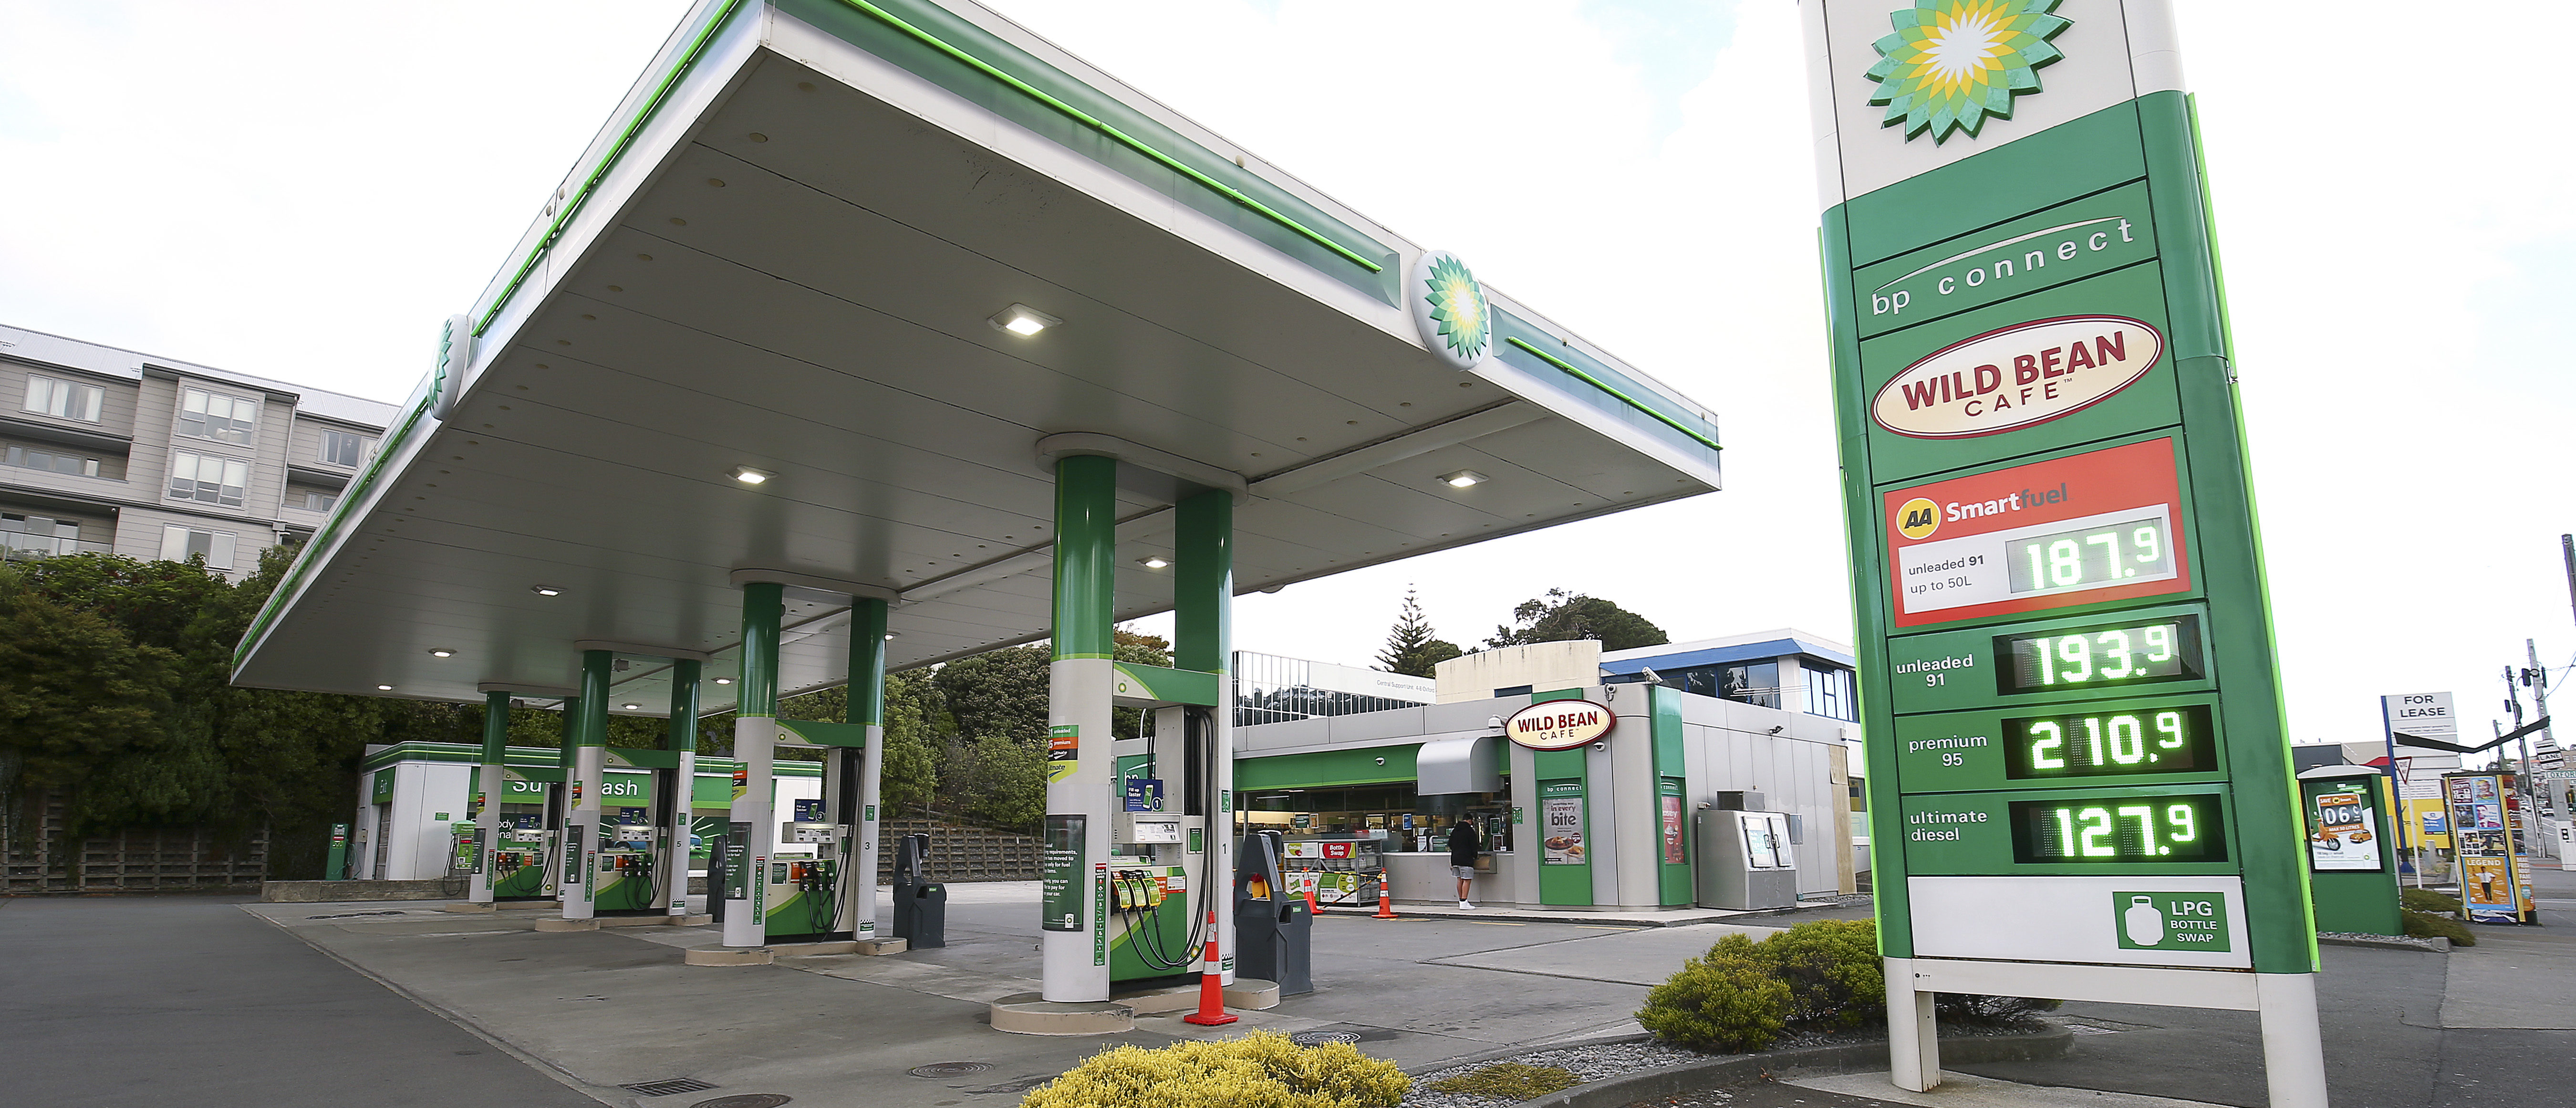 WELLINGTON, NEW ZEALAND - APRIL 11: A general view of petrol prices at BP petrol station on April 11, 2020 in Wellington, New Zealand. Petrol prices have fallen recently, largely due to a decline in demand. New Zealand has been in complete lockdown since Thursday 26 March to stop the spread of COVID-19 across the country. Under the COVID-19 Alert Level Four restrictions, New Zealanders are not allowed to leave their homes unless for exercise in their local area, or to get essential supplies. Offices, schools and childcare centres have been closed, along with bars, restaurants, cinemas and playgrounds. Essential services remain open, including supermarkets and pharmacies. Lockdown measures are expected to remain in place for at least four weeks, with Prime Minister Jacinda Ardern warning New Zealanders of zero tolerance for people ignoring the restrictions, with police able to enforce them if required. (Photo by Hagen Hopkins/Getty Images)